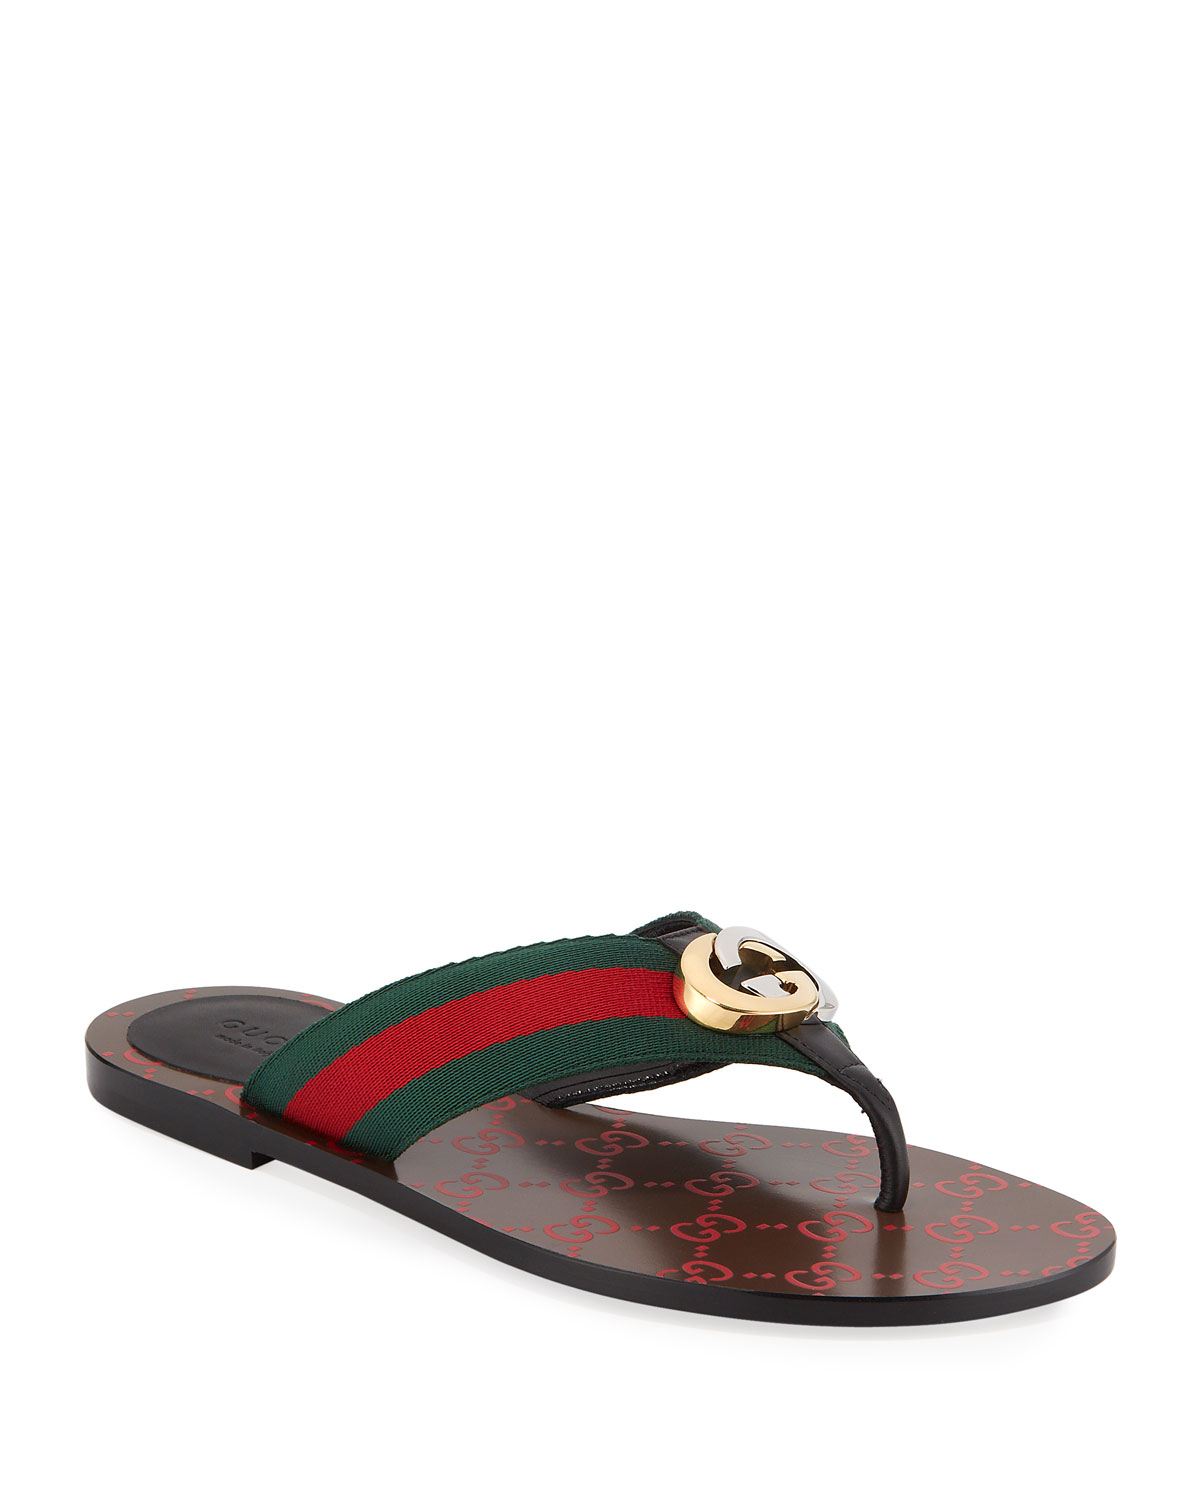 Gucci Sandals KIKA WEB THONG SANDALS